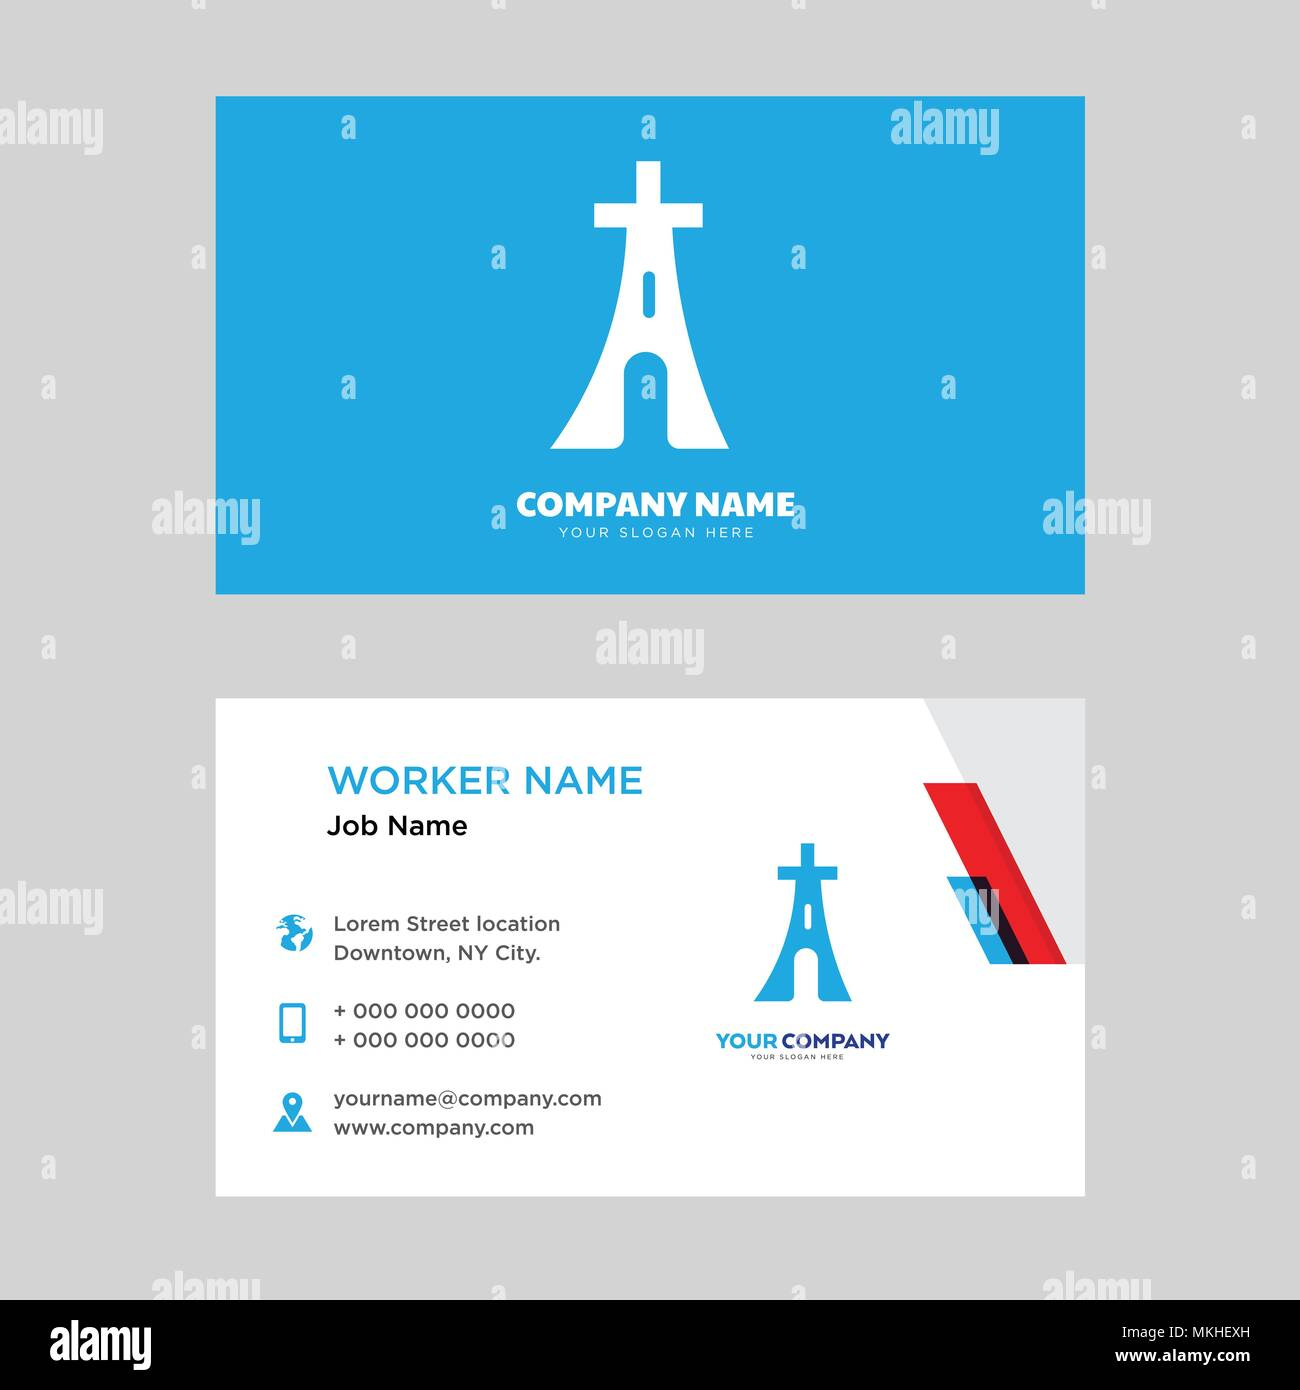 Eiffel tower business card design template, Visiting for your company, Modern horizontal identity Card Vector - Stock Vector